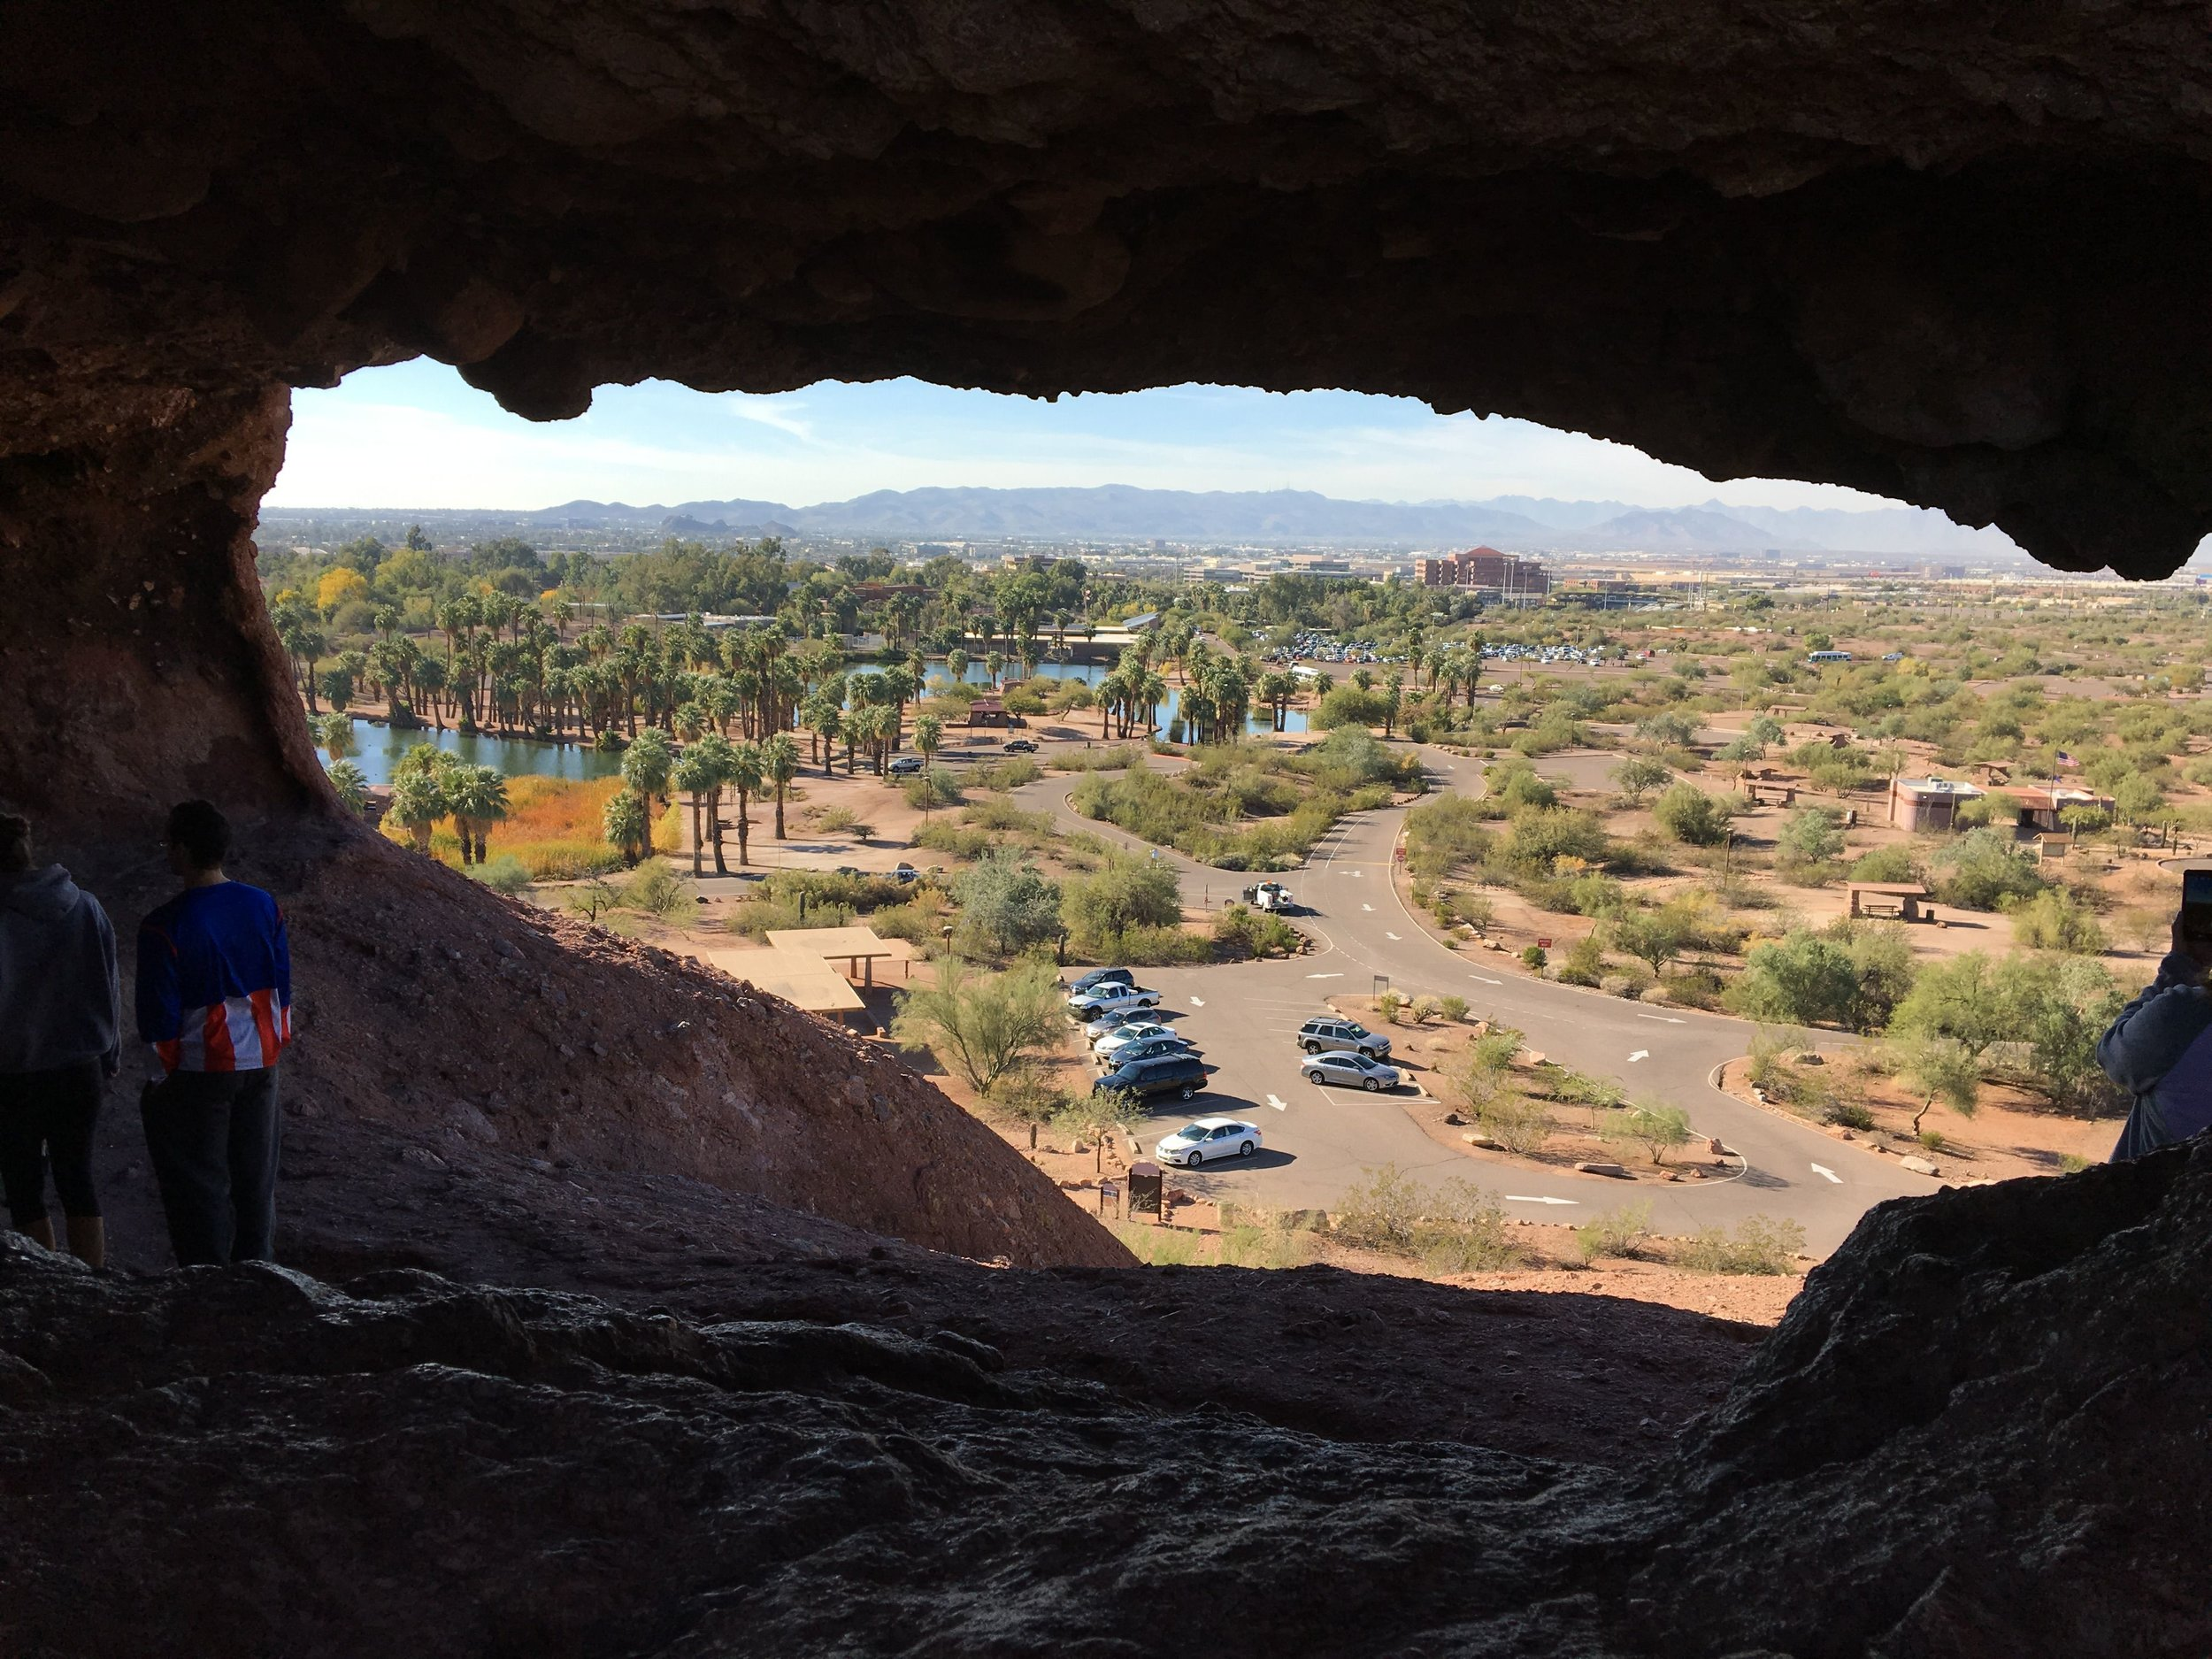 Hole-in-the-Rock in Papago Park, Phoenix, Arizona